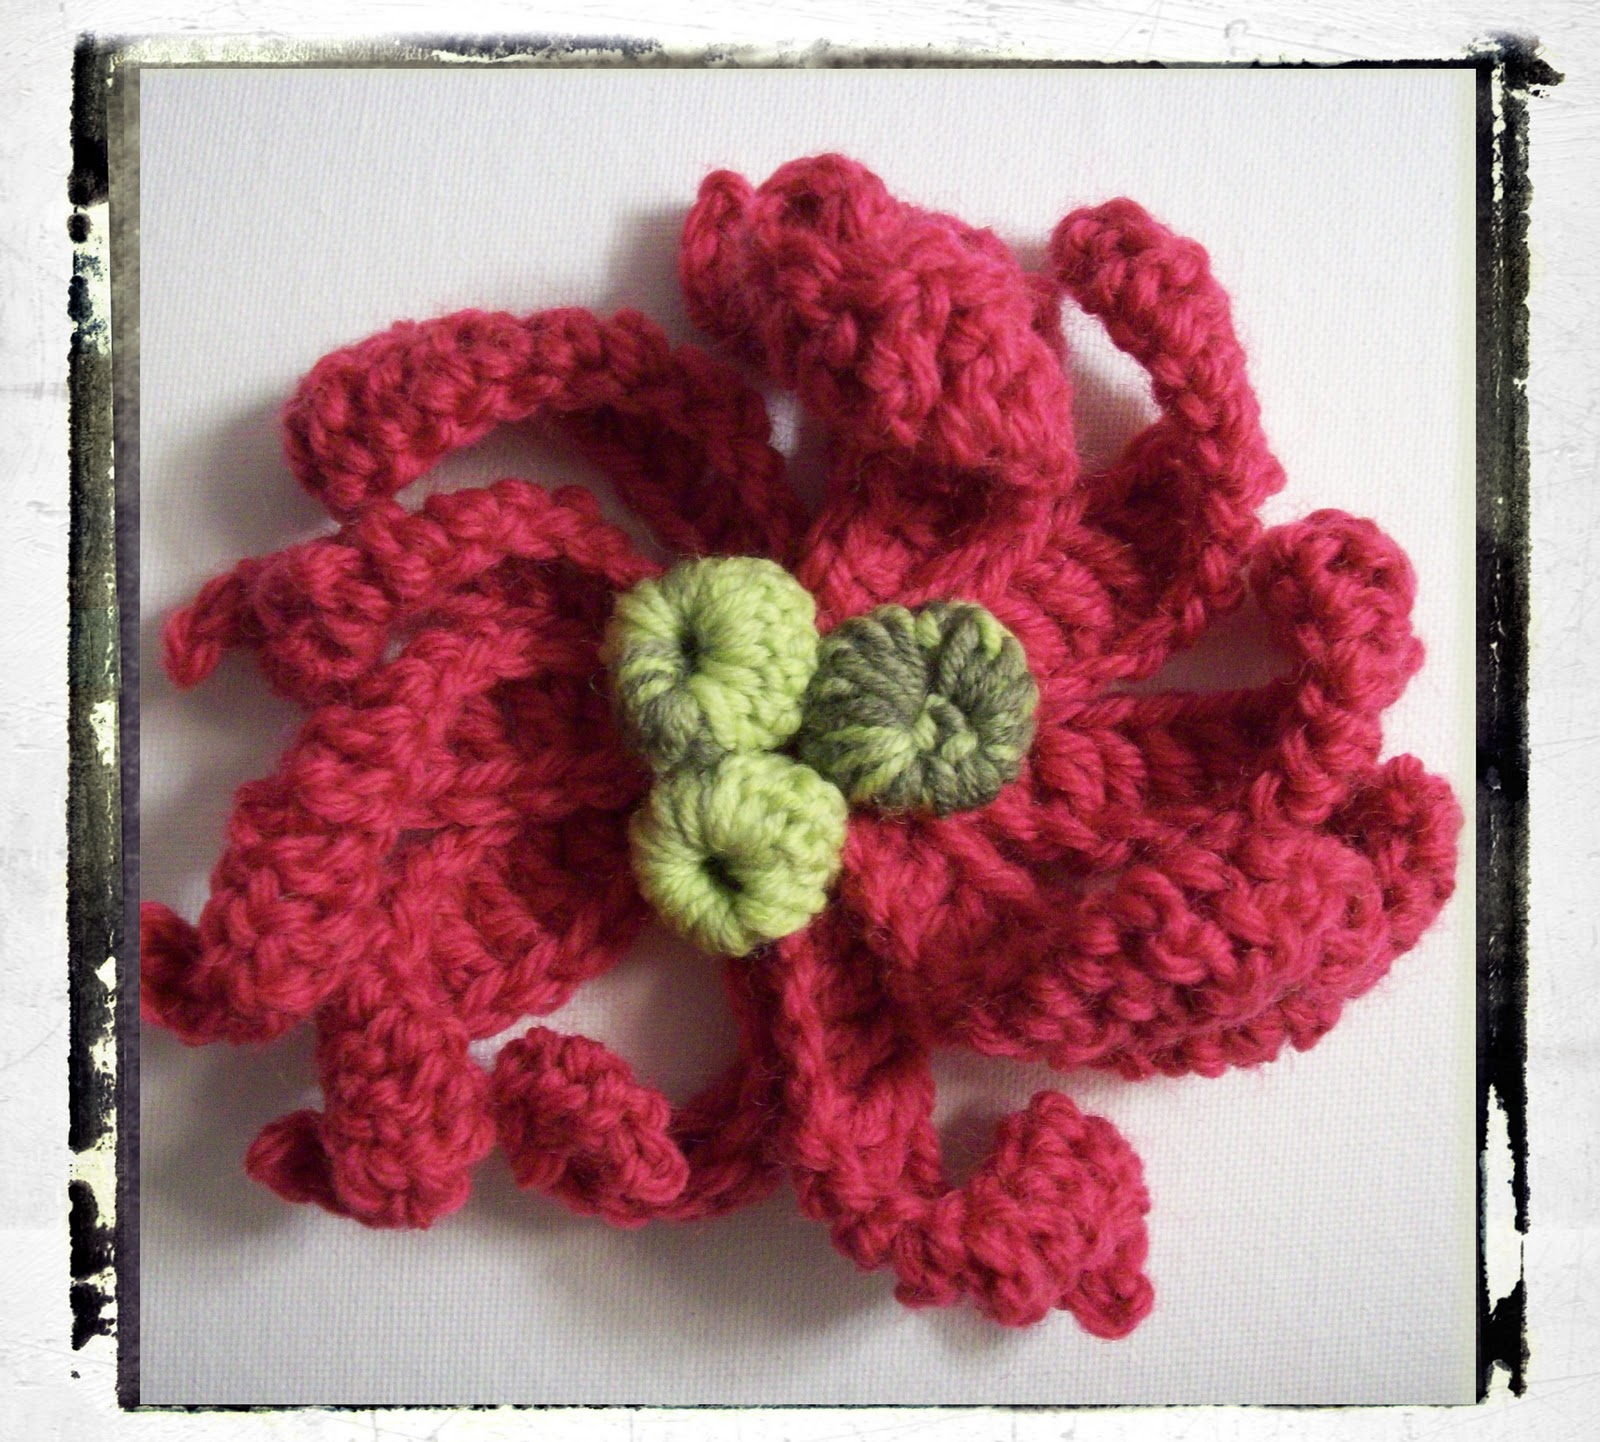 Felted Crochet Flowers